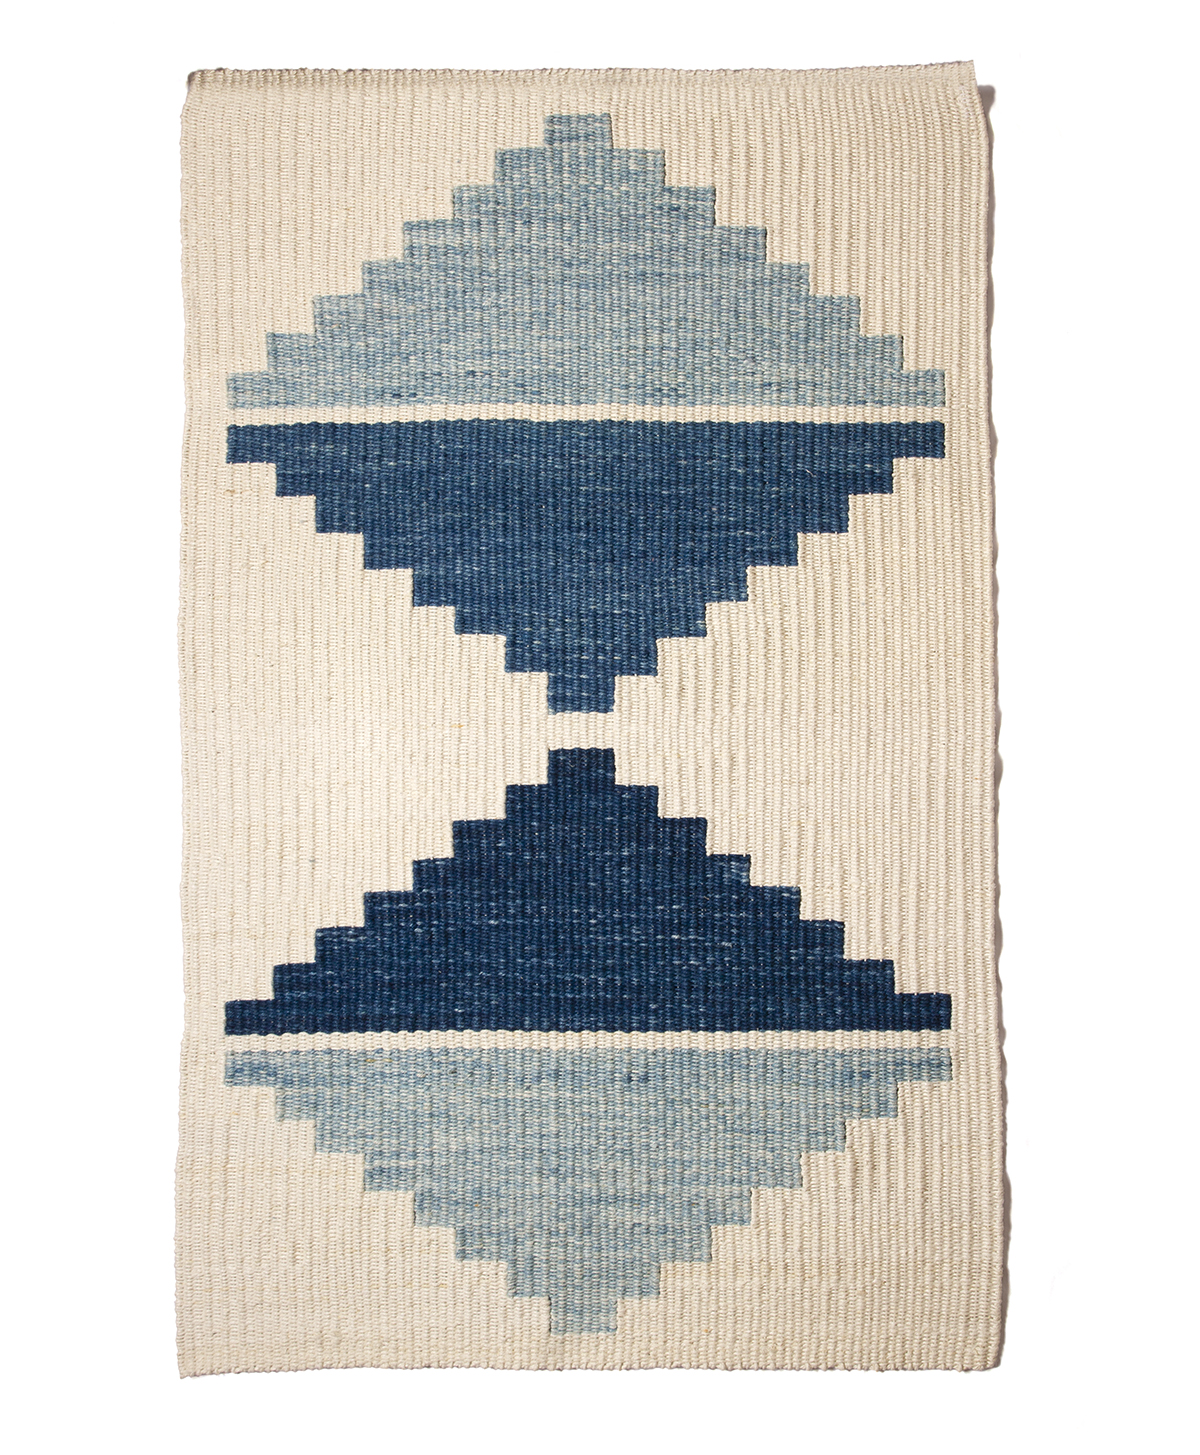 "48"" x 72"" / hemp wall hanging - indigo / 2019"